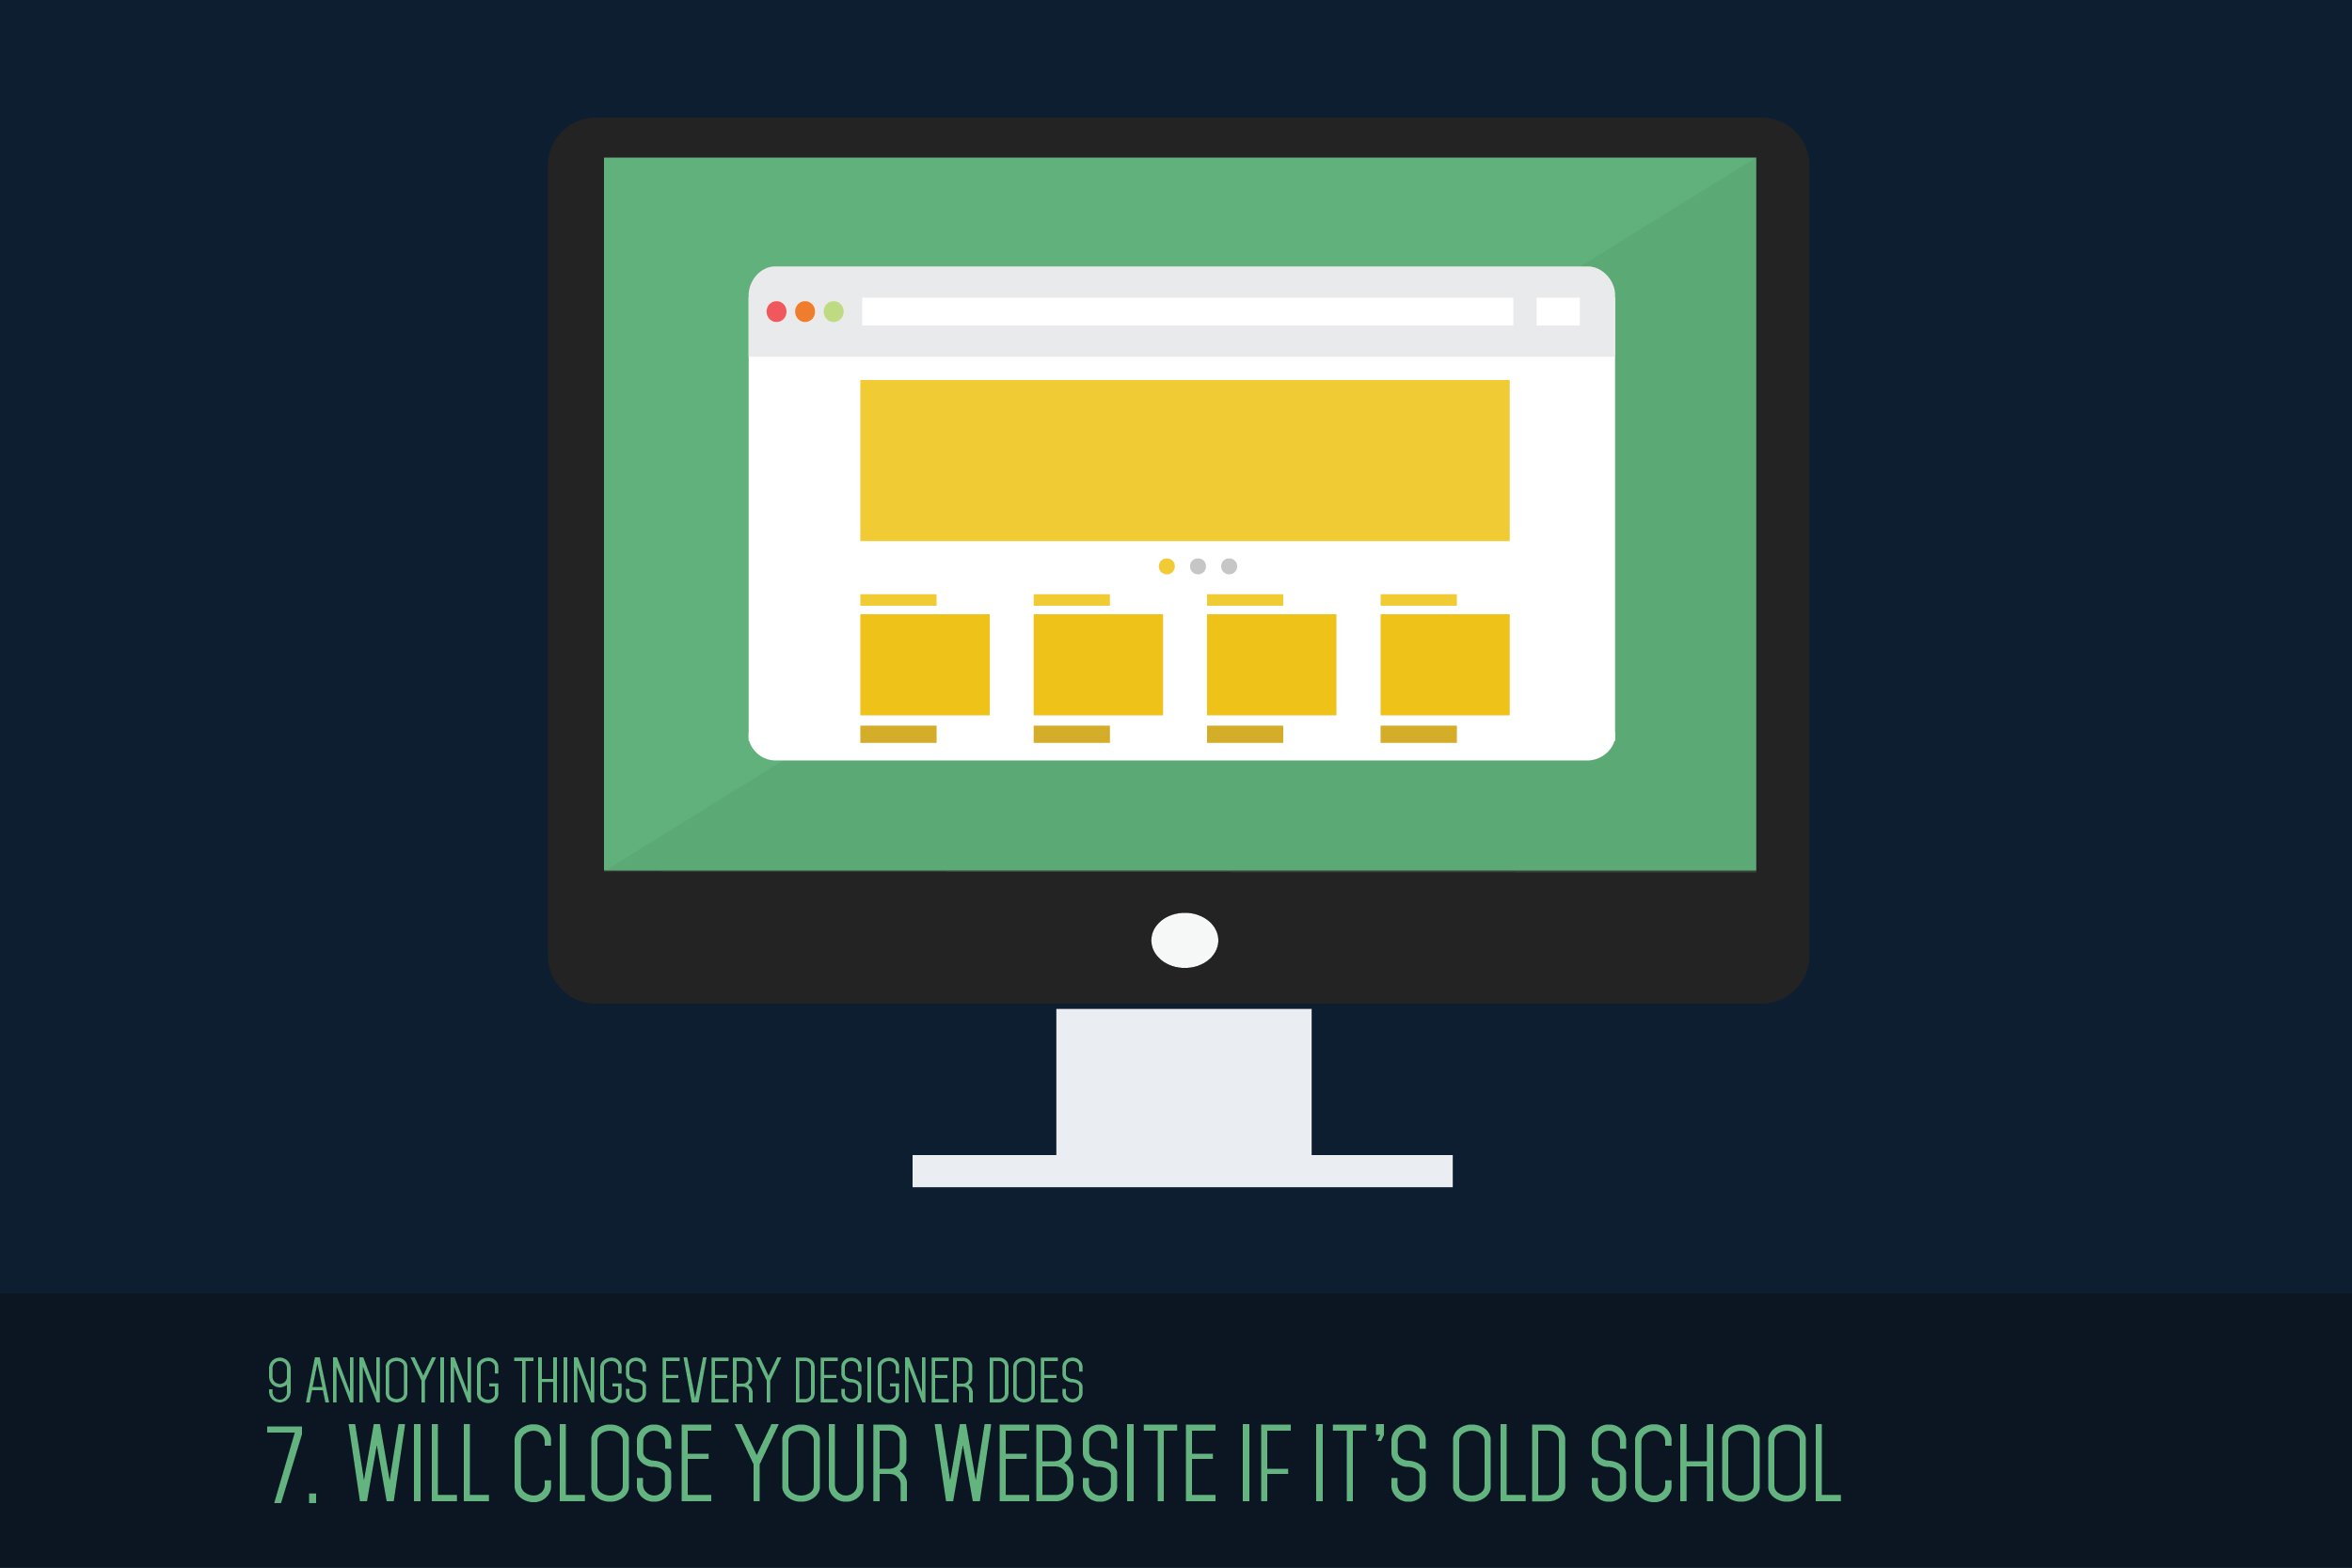 Will Close Your Website If It's Old School